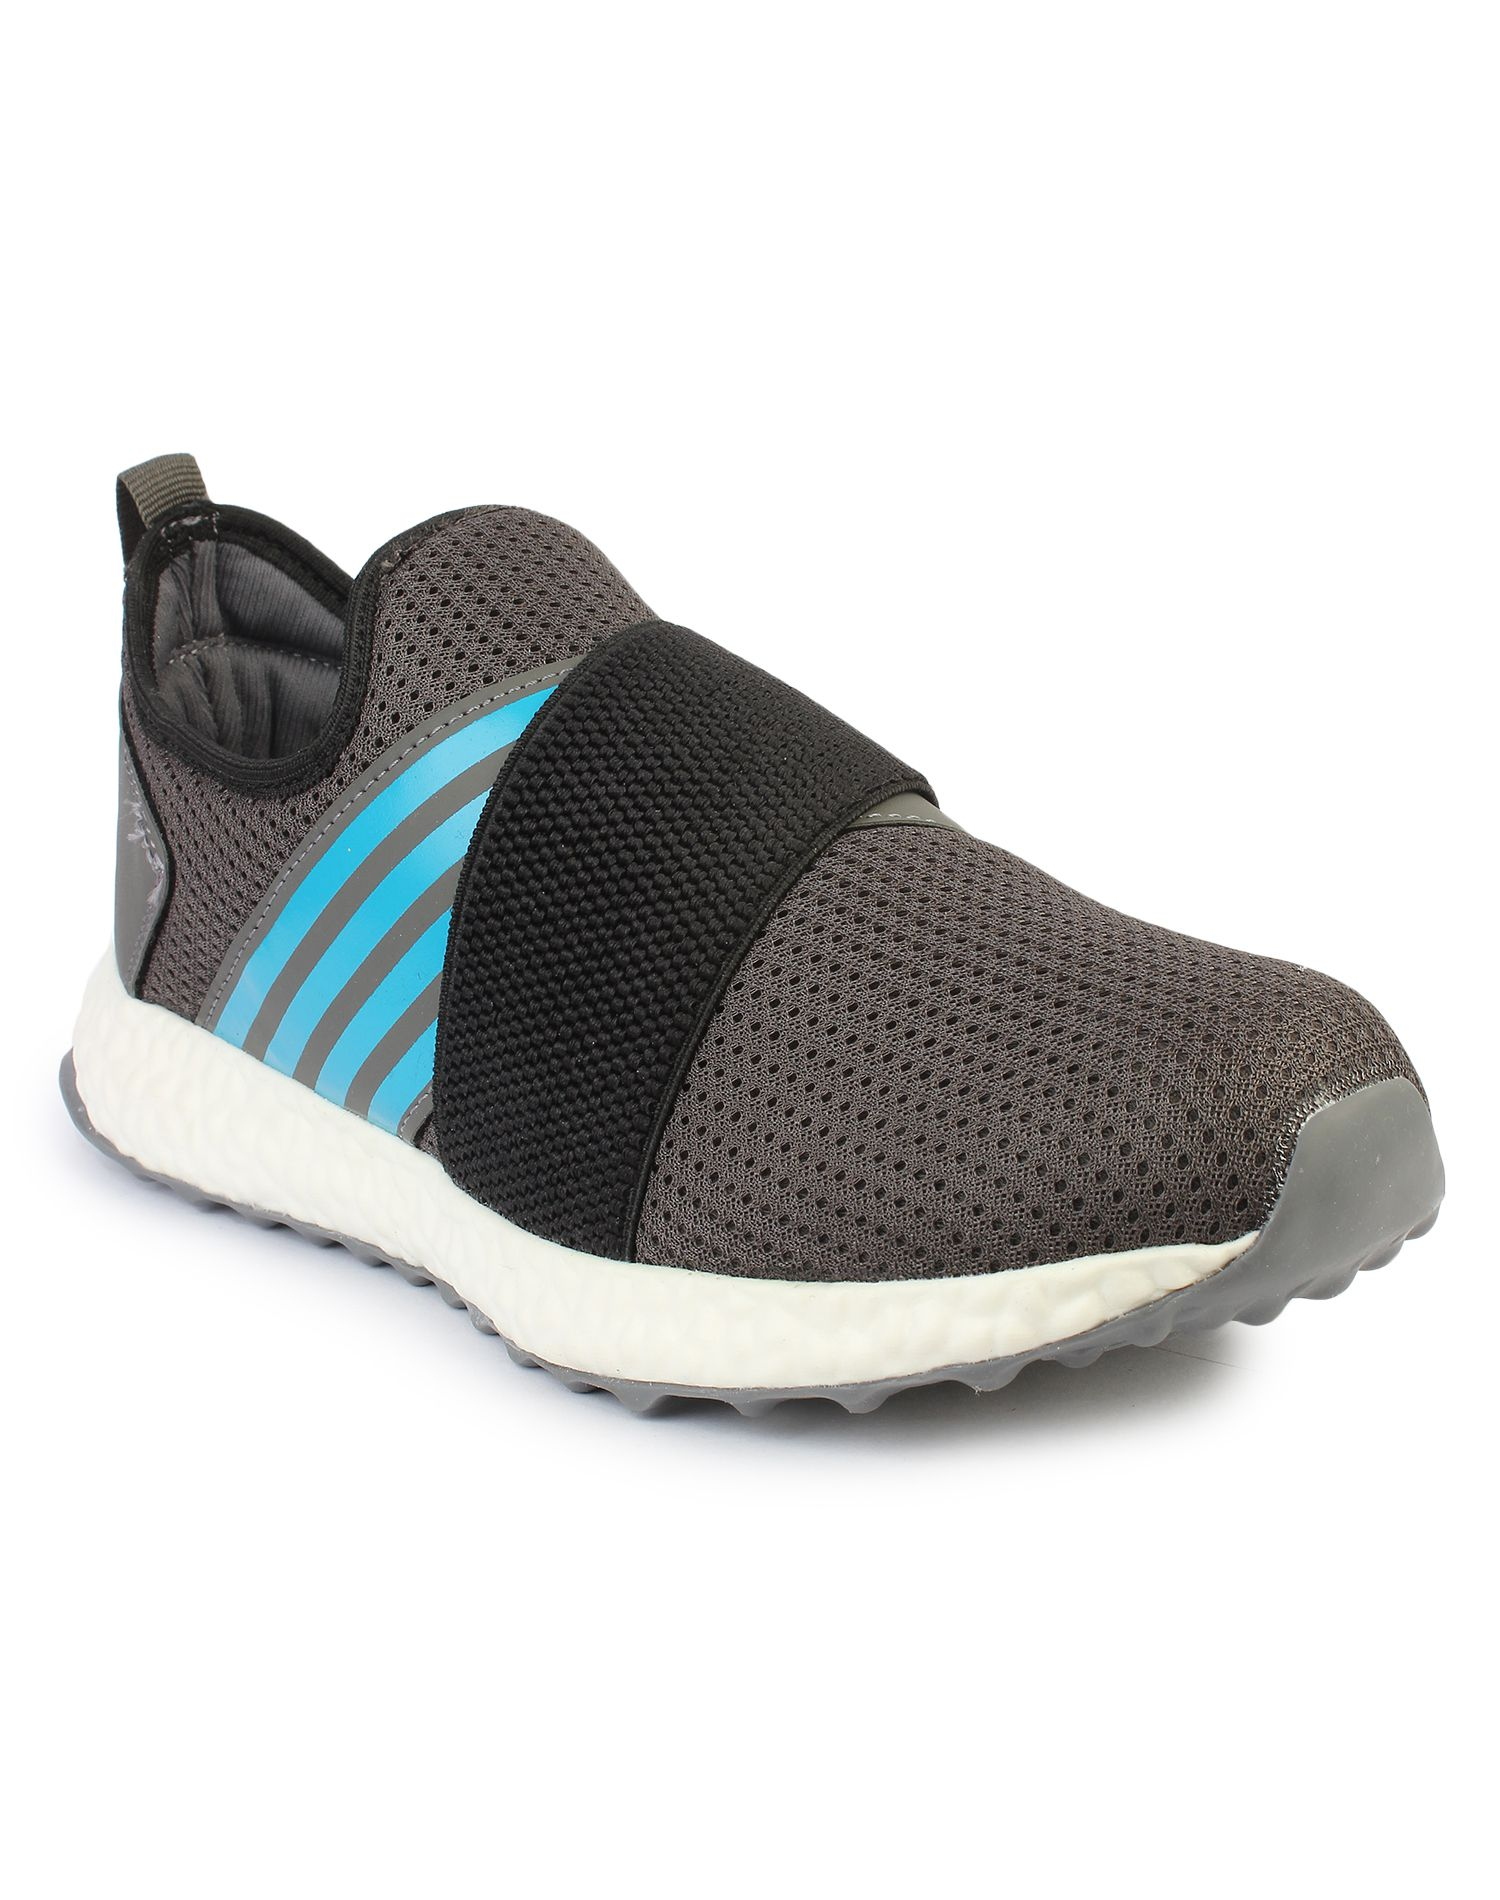 Columbus Gray Training Shoes sale wholesale price nsN9OH6OW8